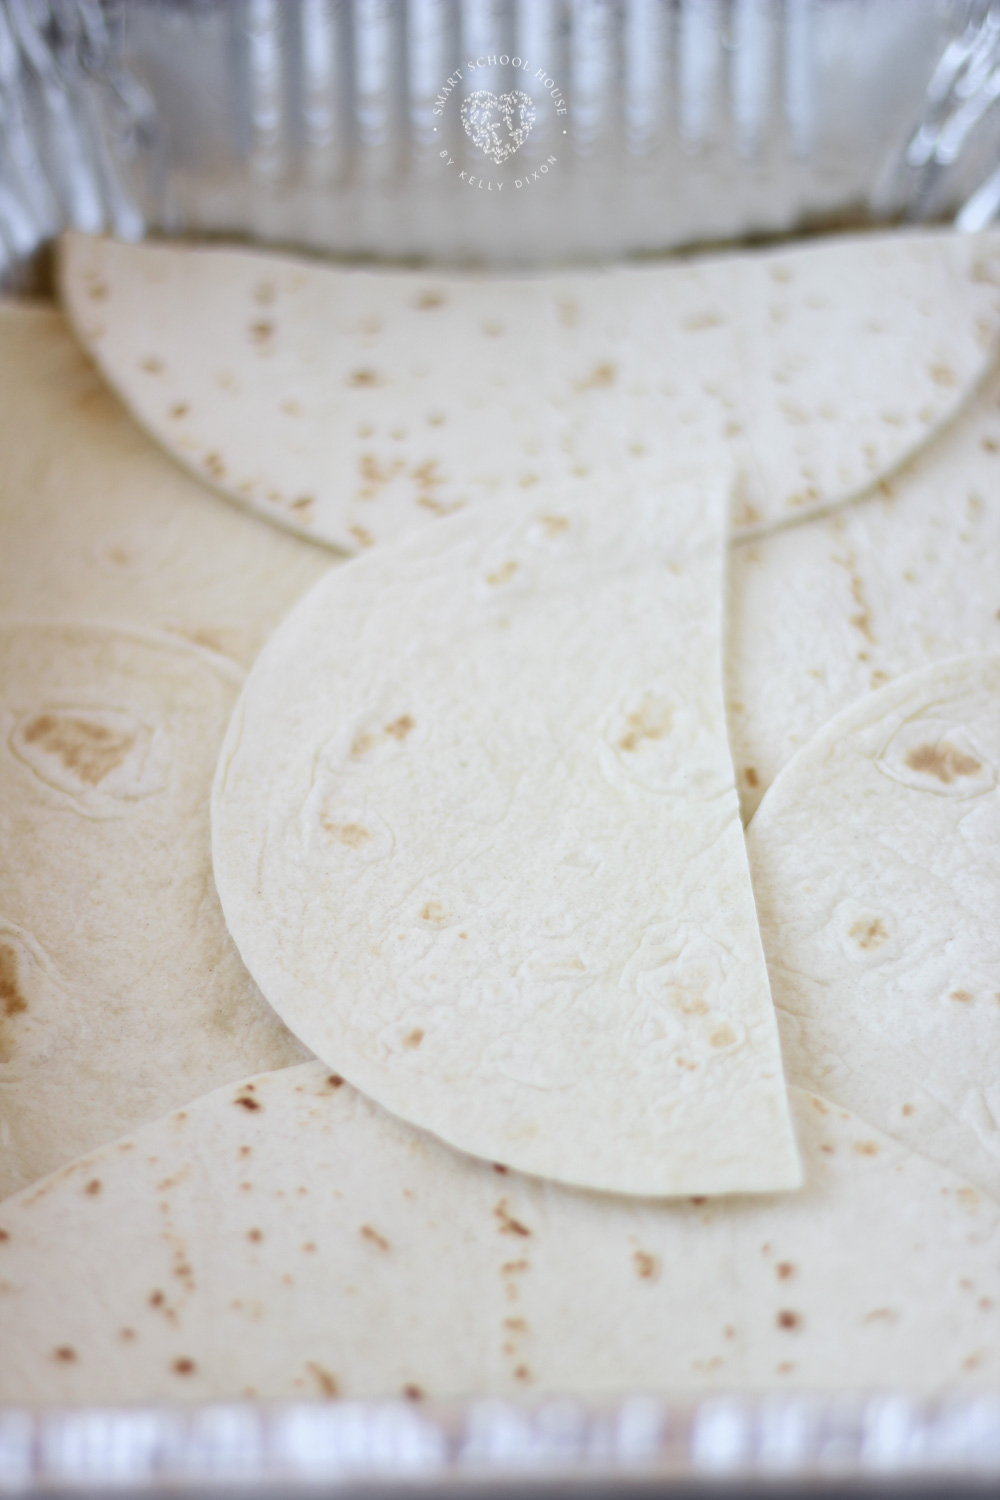 Tortillas cut in half.